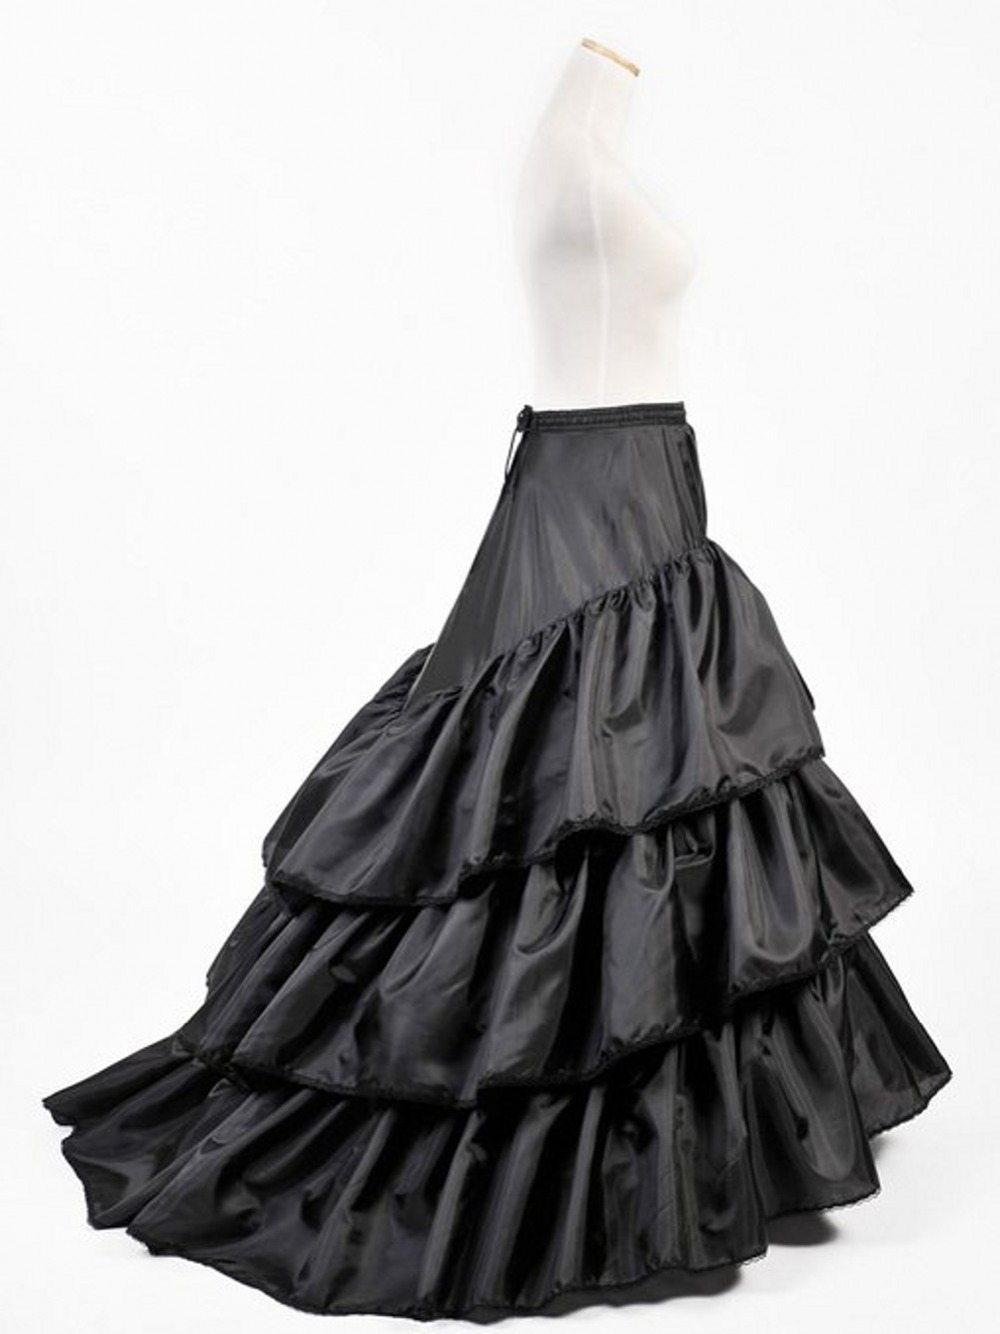 Cheap Full Underskirt, find Full Underskirt deals on line at Alibaba.com